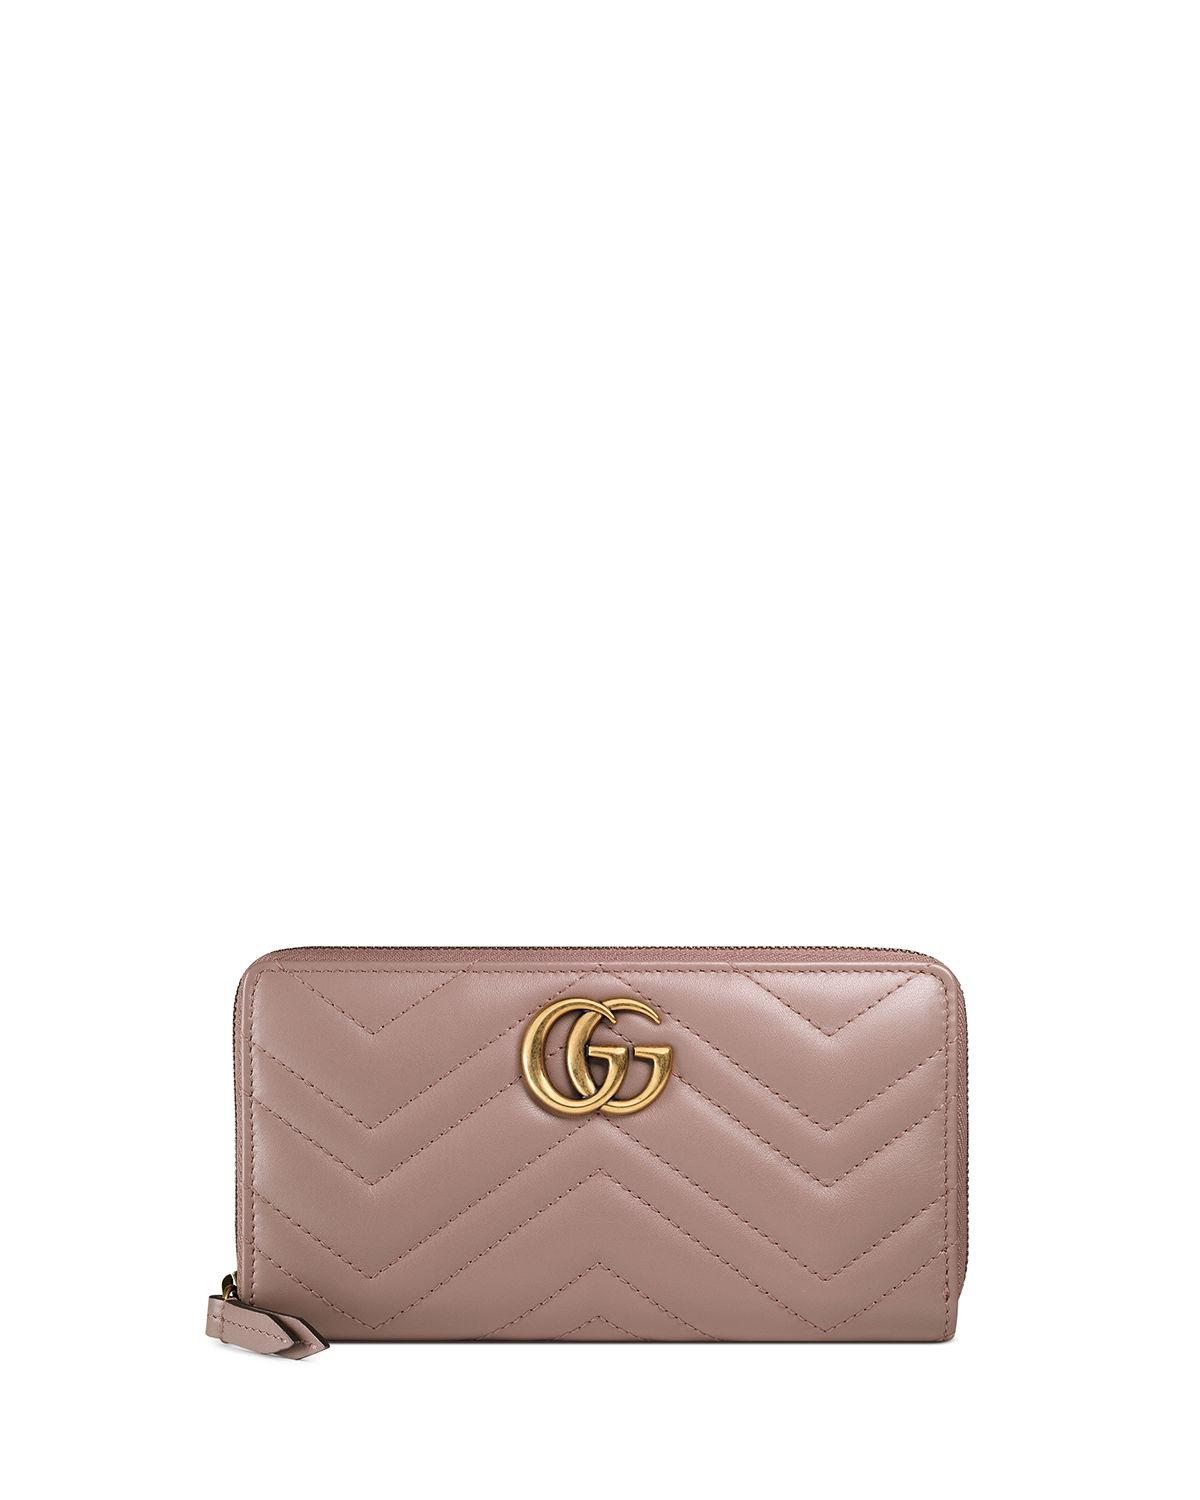 8b7f0a12ccb Gucci - Multicolor GG Marmont Medium Quilted Zip Wallet - Lyst. View  fullscreen